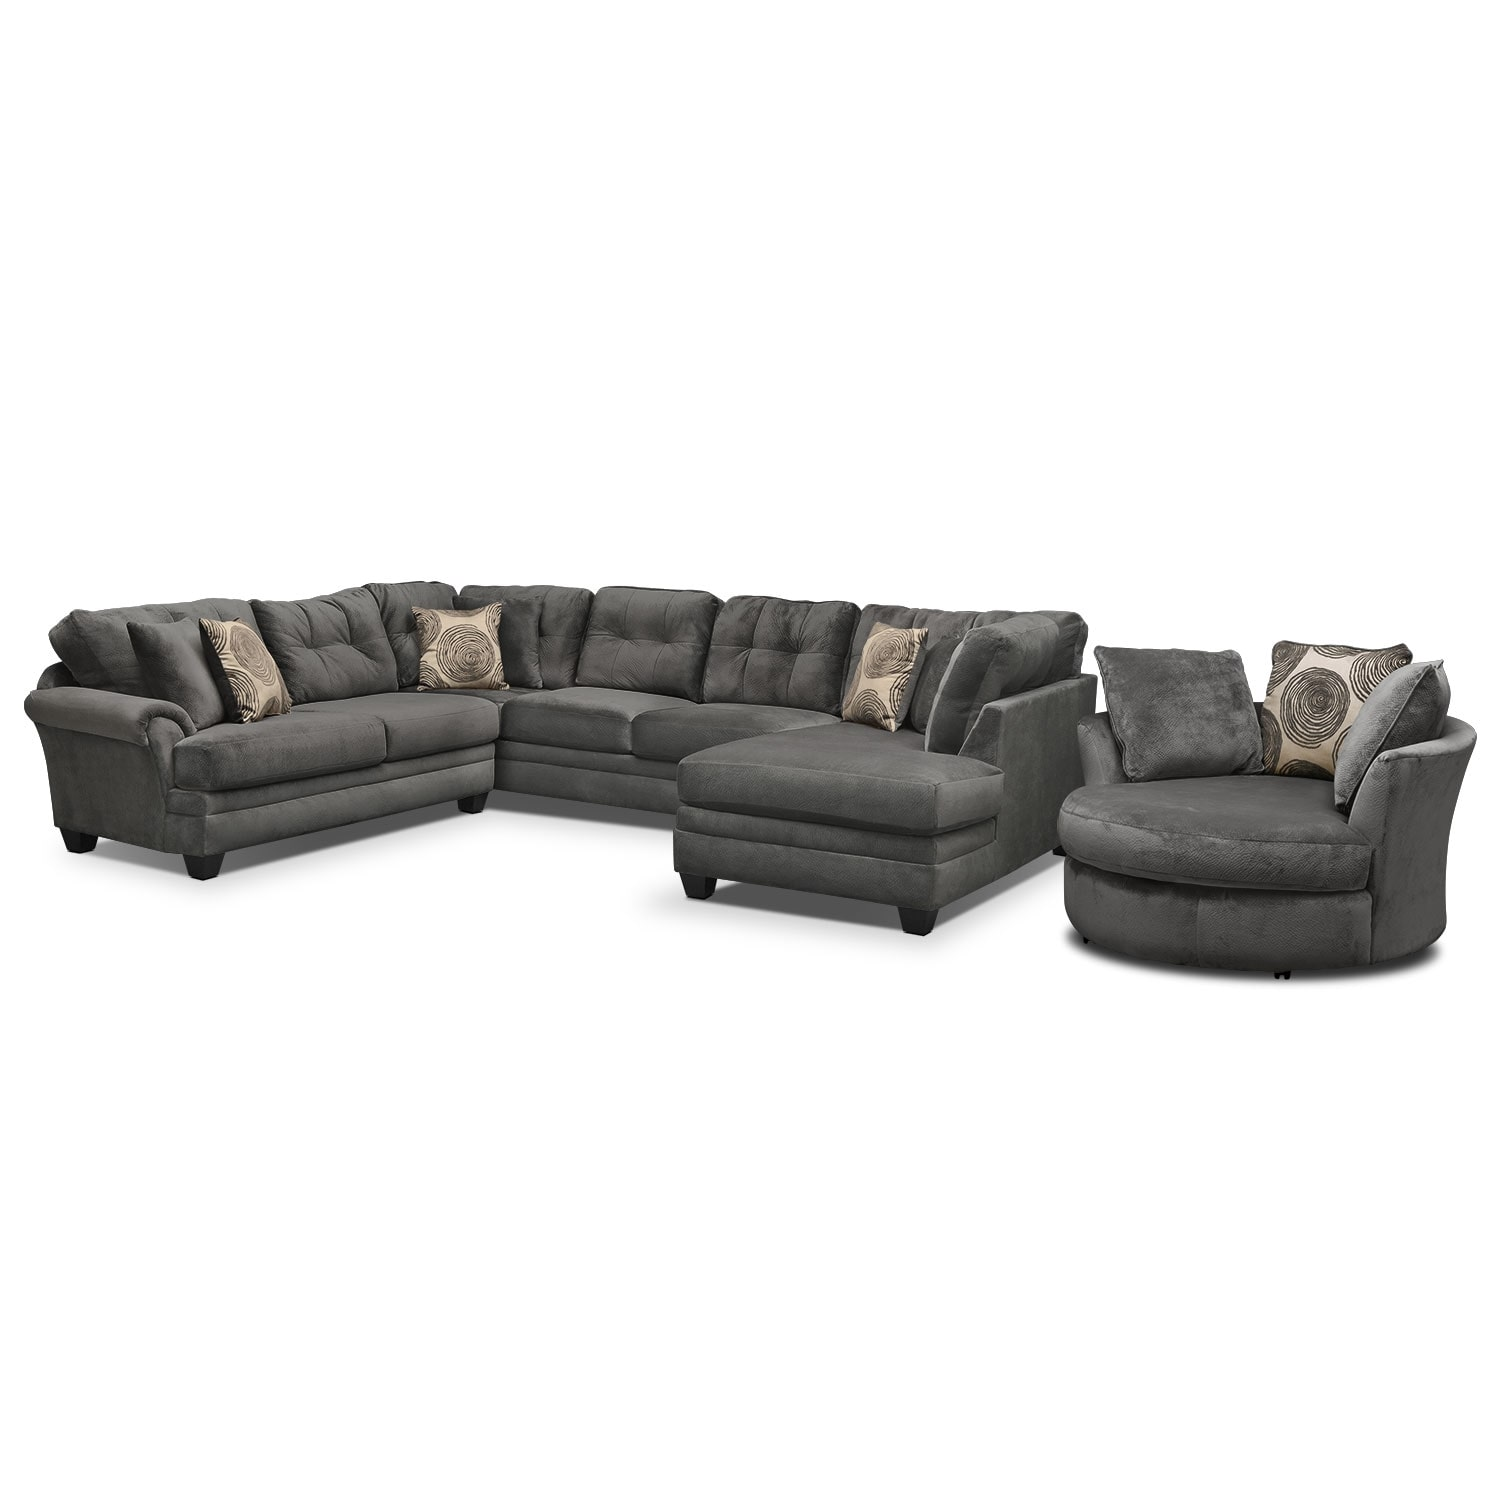 Cordelle 3-Piece Sectional and Swivel Chair Set - Gray